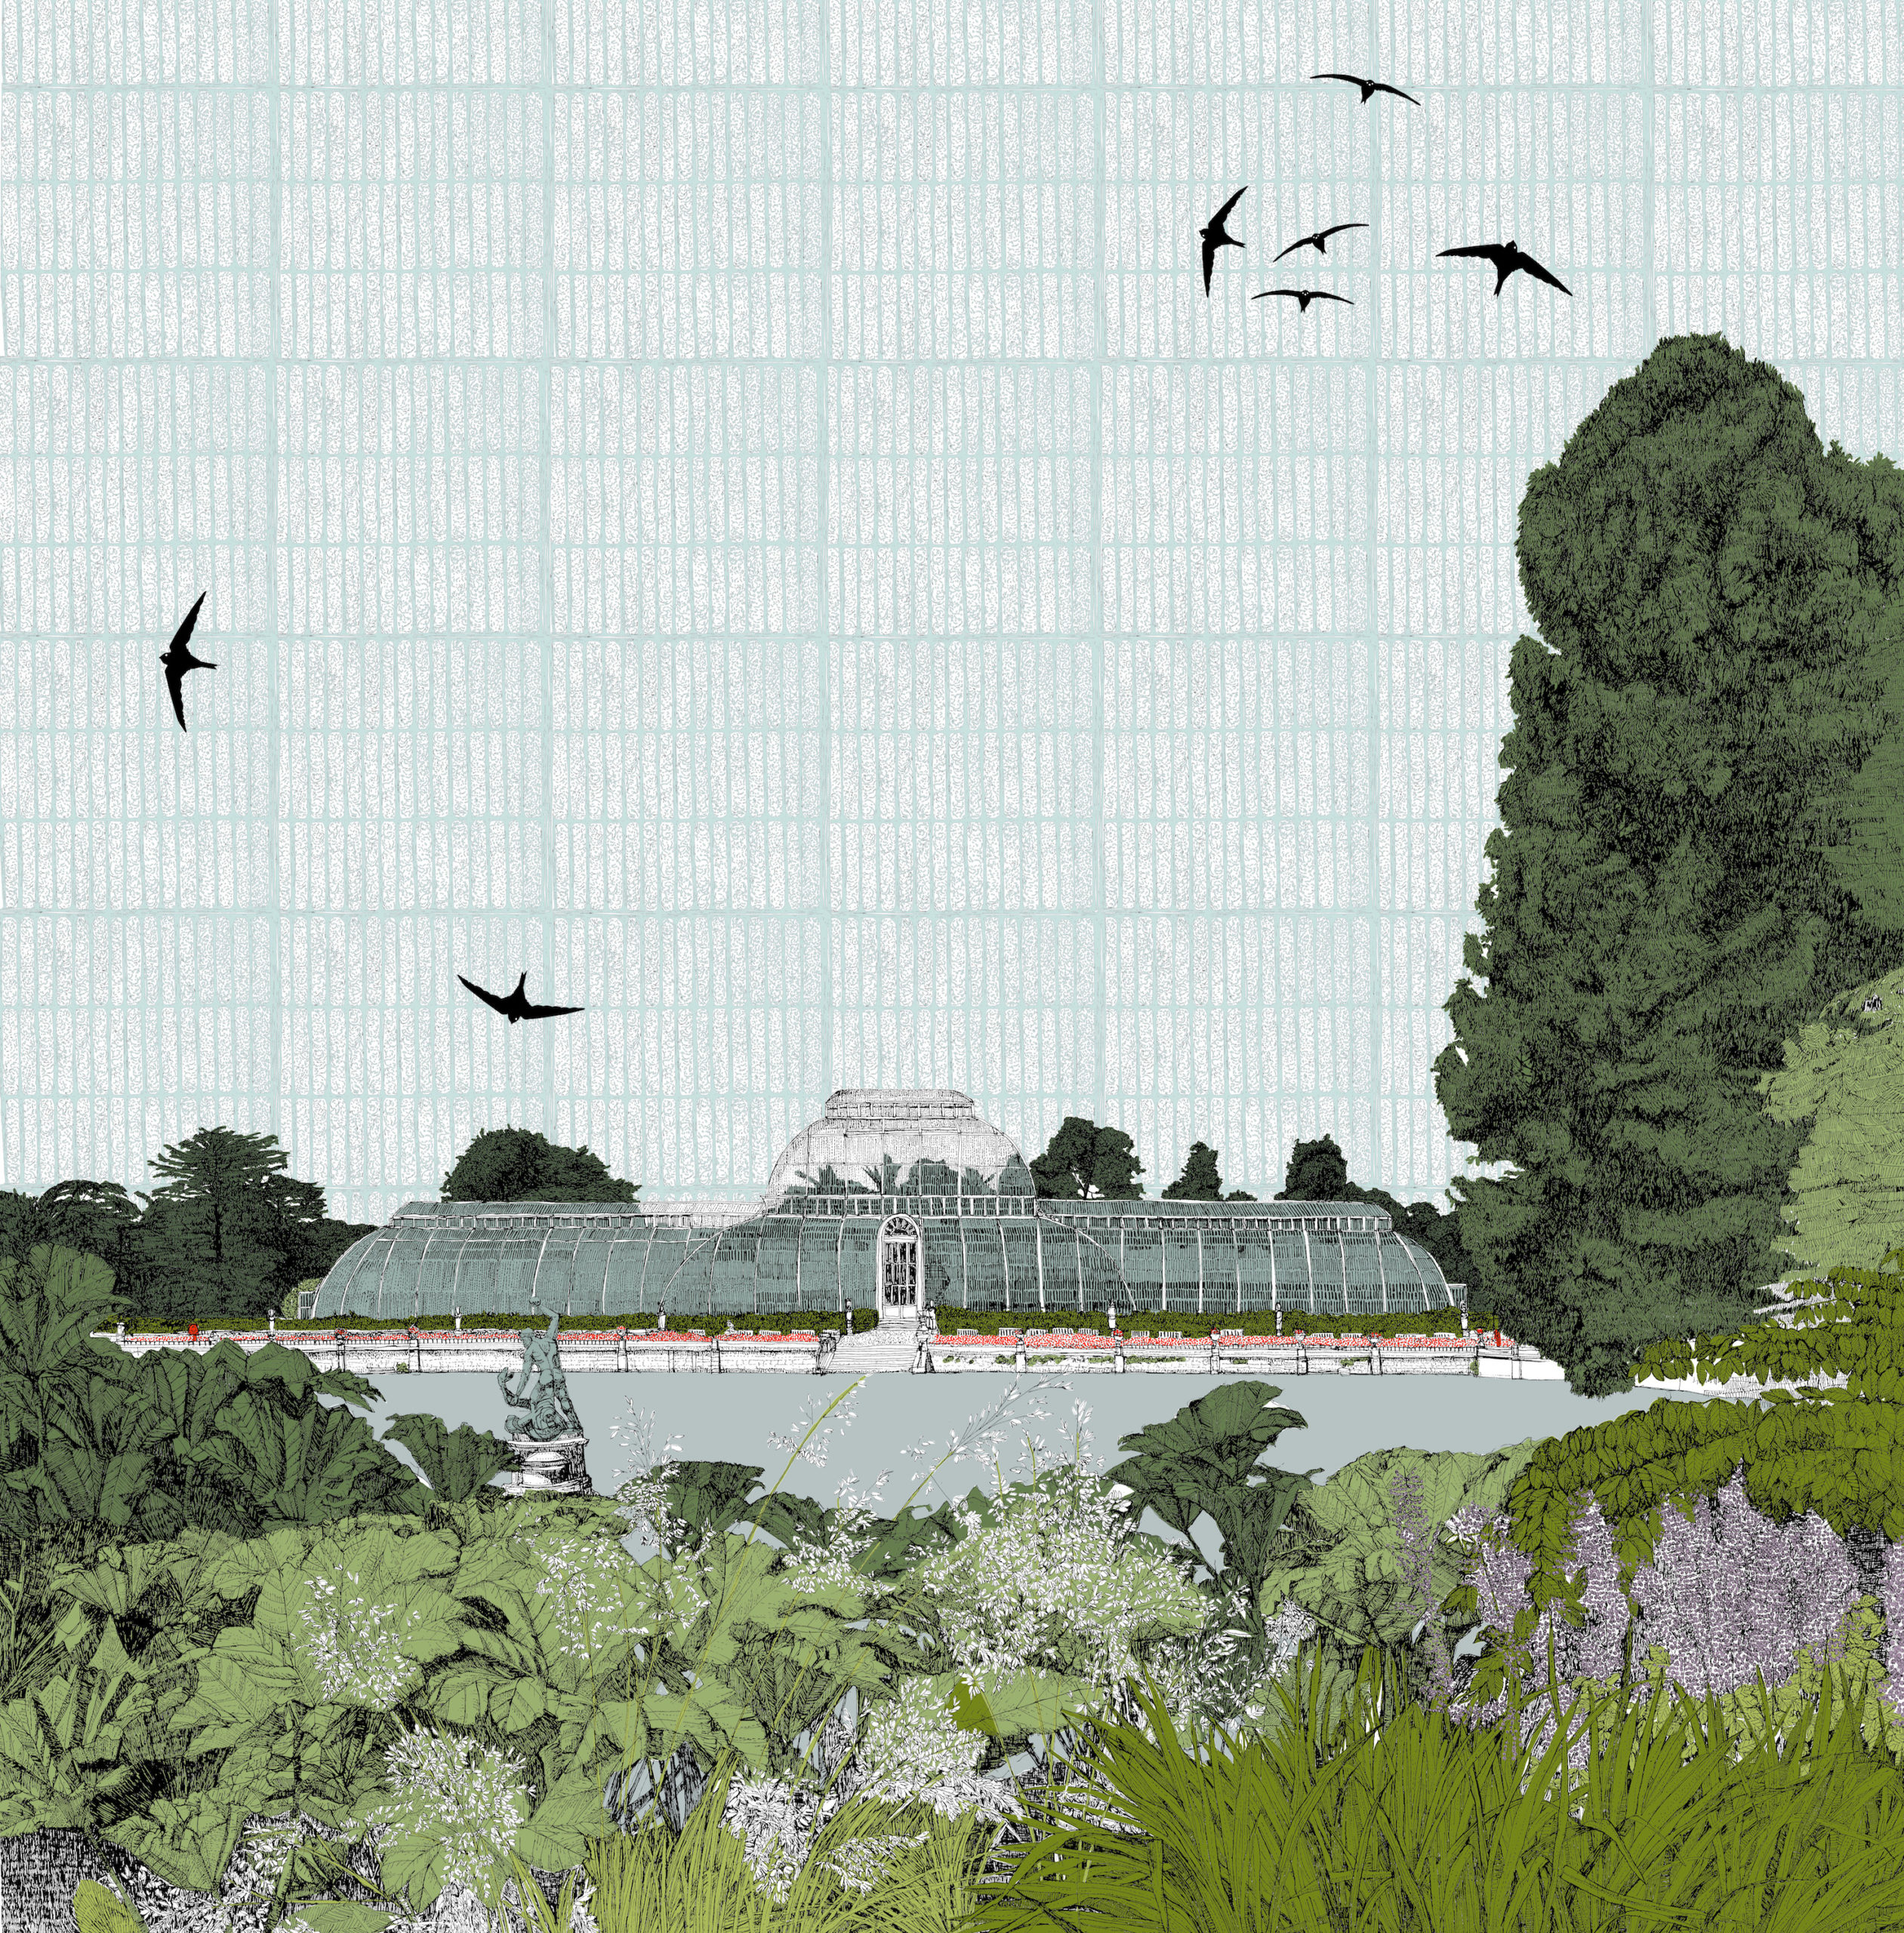 Screenprint of Kew Gardens glasshouse by Clare Halifax